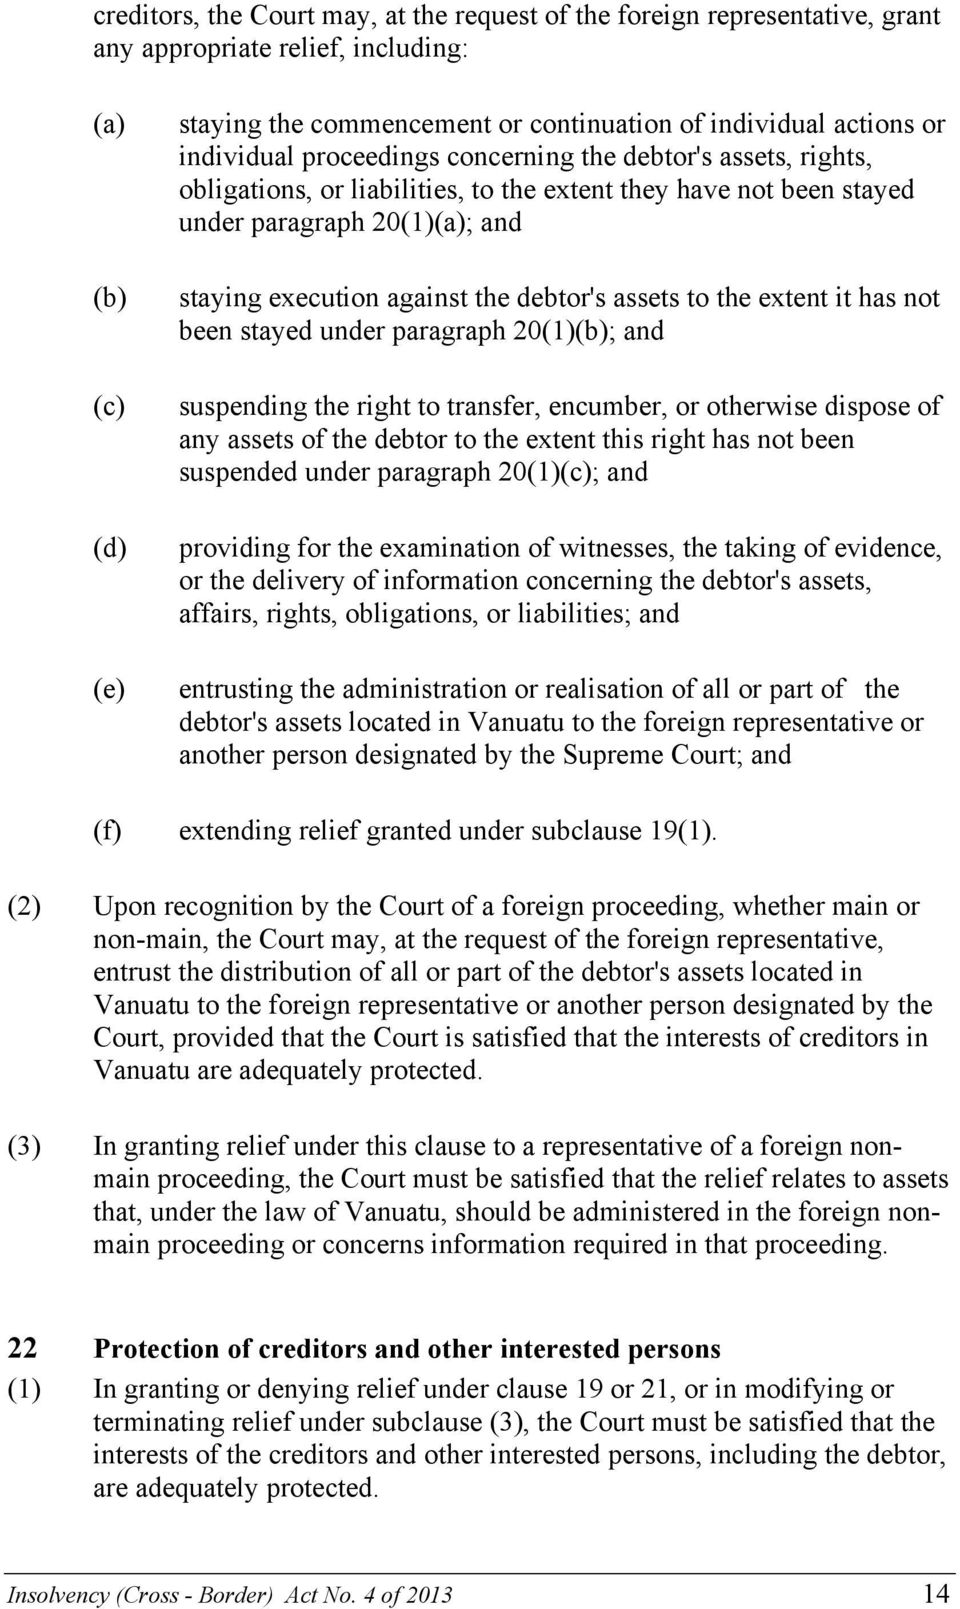 the extent it has not been stayed under paragraph 20(1); and suspending the right to transfer, encumber, or otherwise dispose of any assets of the debtor to the extent this right has not been